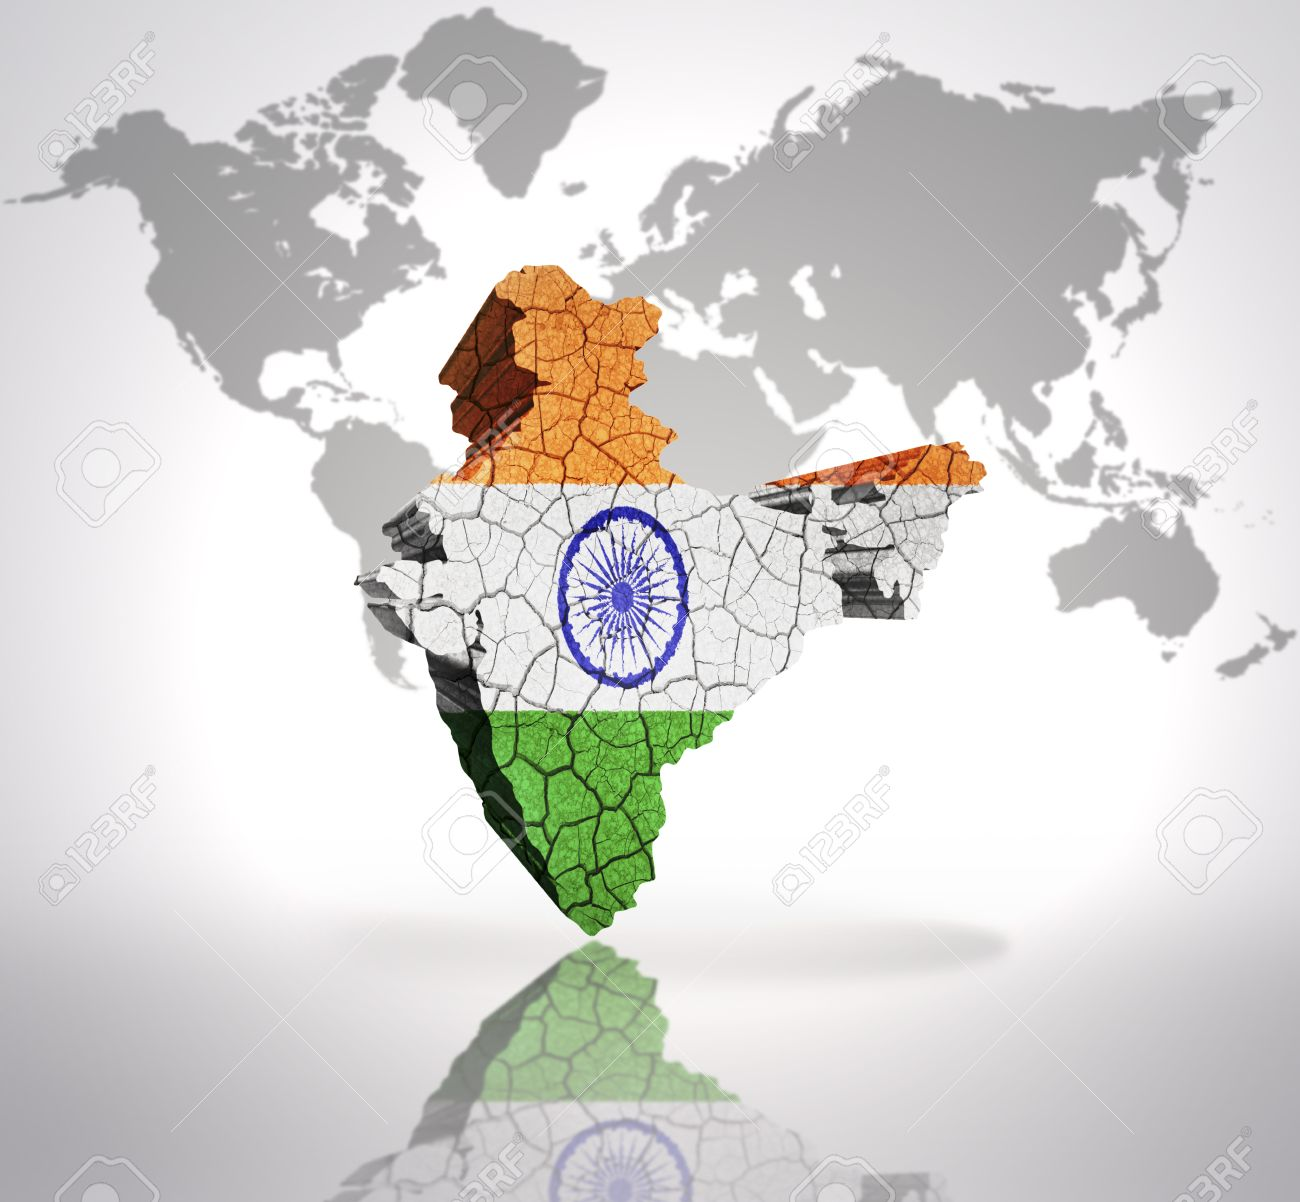 Map of india with indian flag on a world map background stock photo map of india with indian flag on a world map background stock photo 32802531 gumiabroncs Images